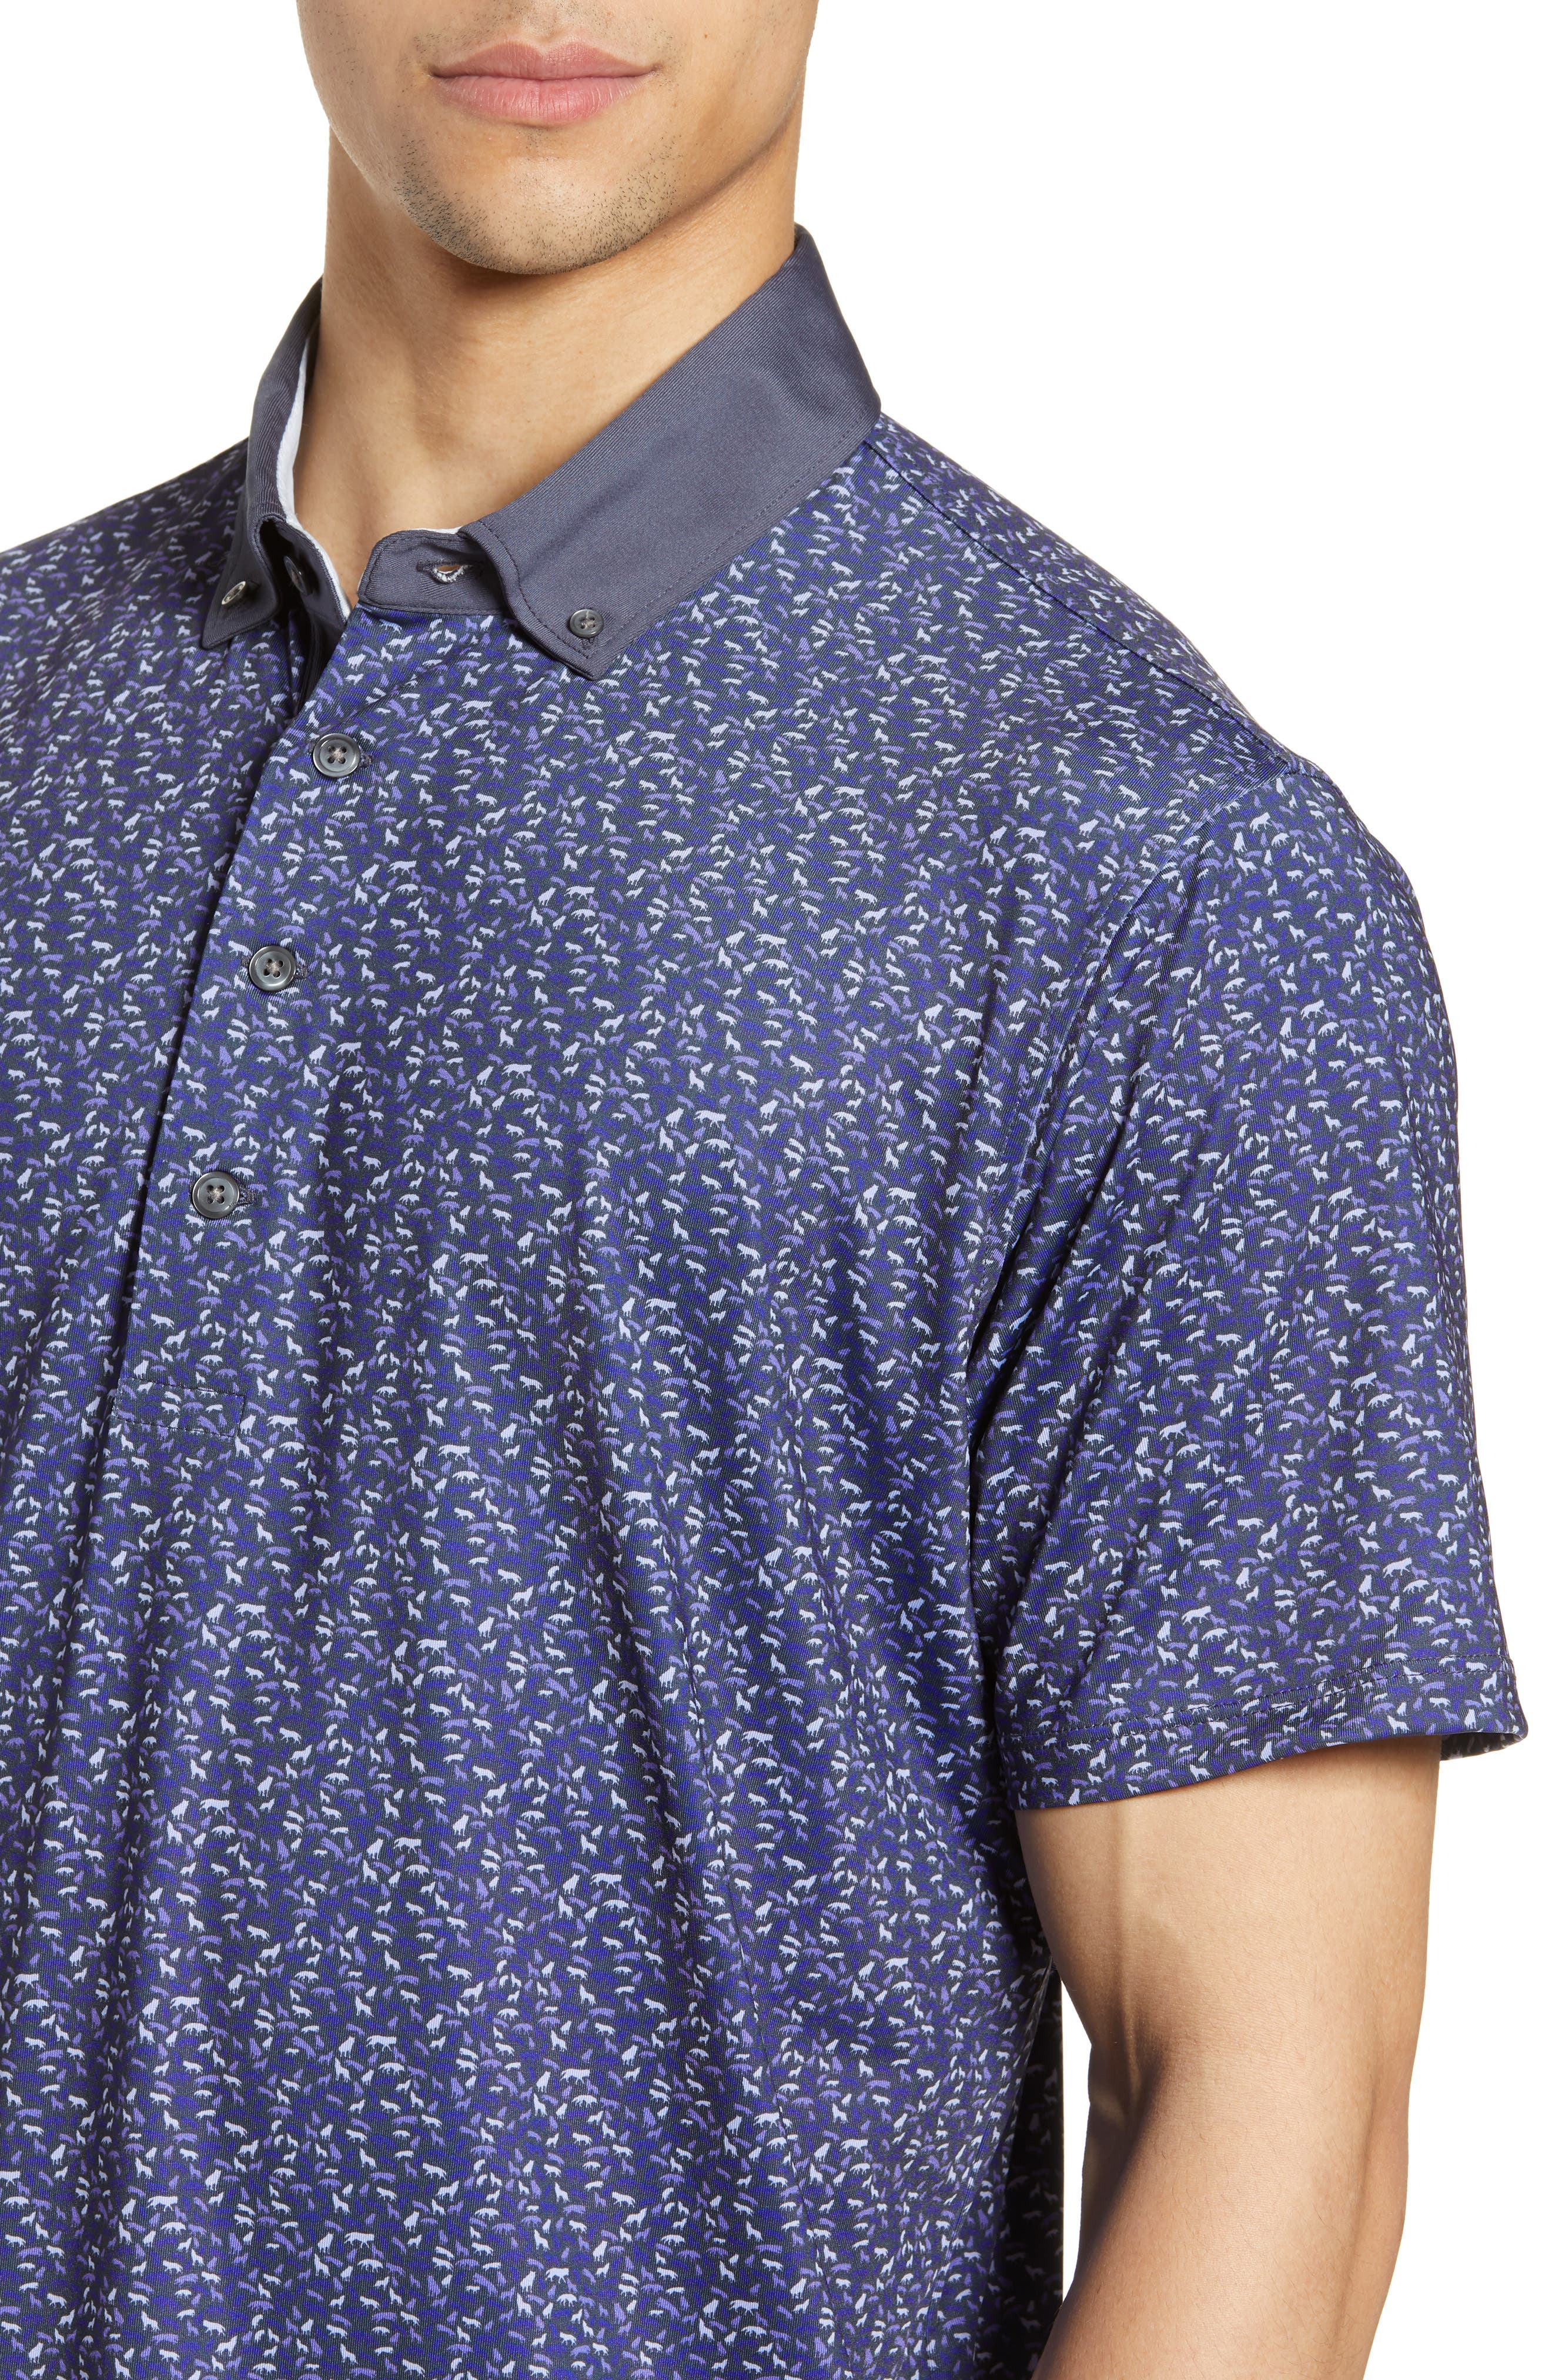 GREYSON, Wolfpack Technical Polo, Alternate thumbnail 4, color, SWALLOW/ DOVE